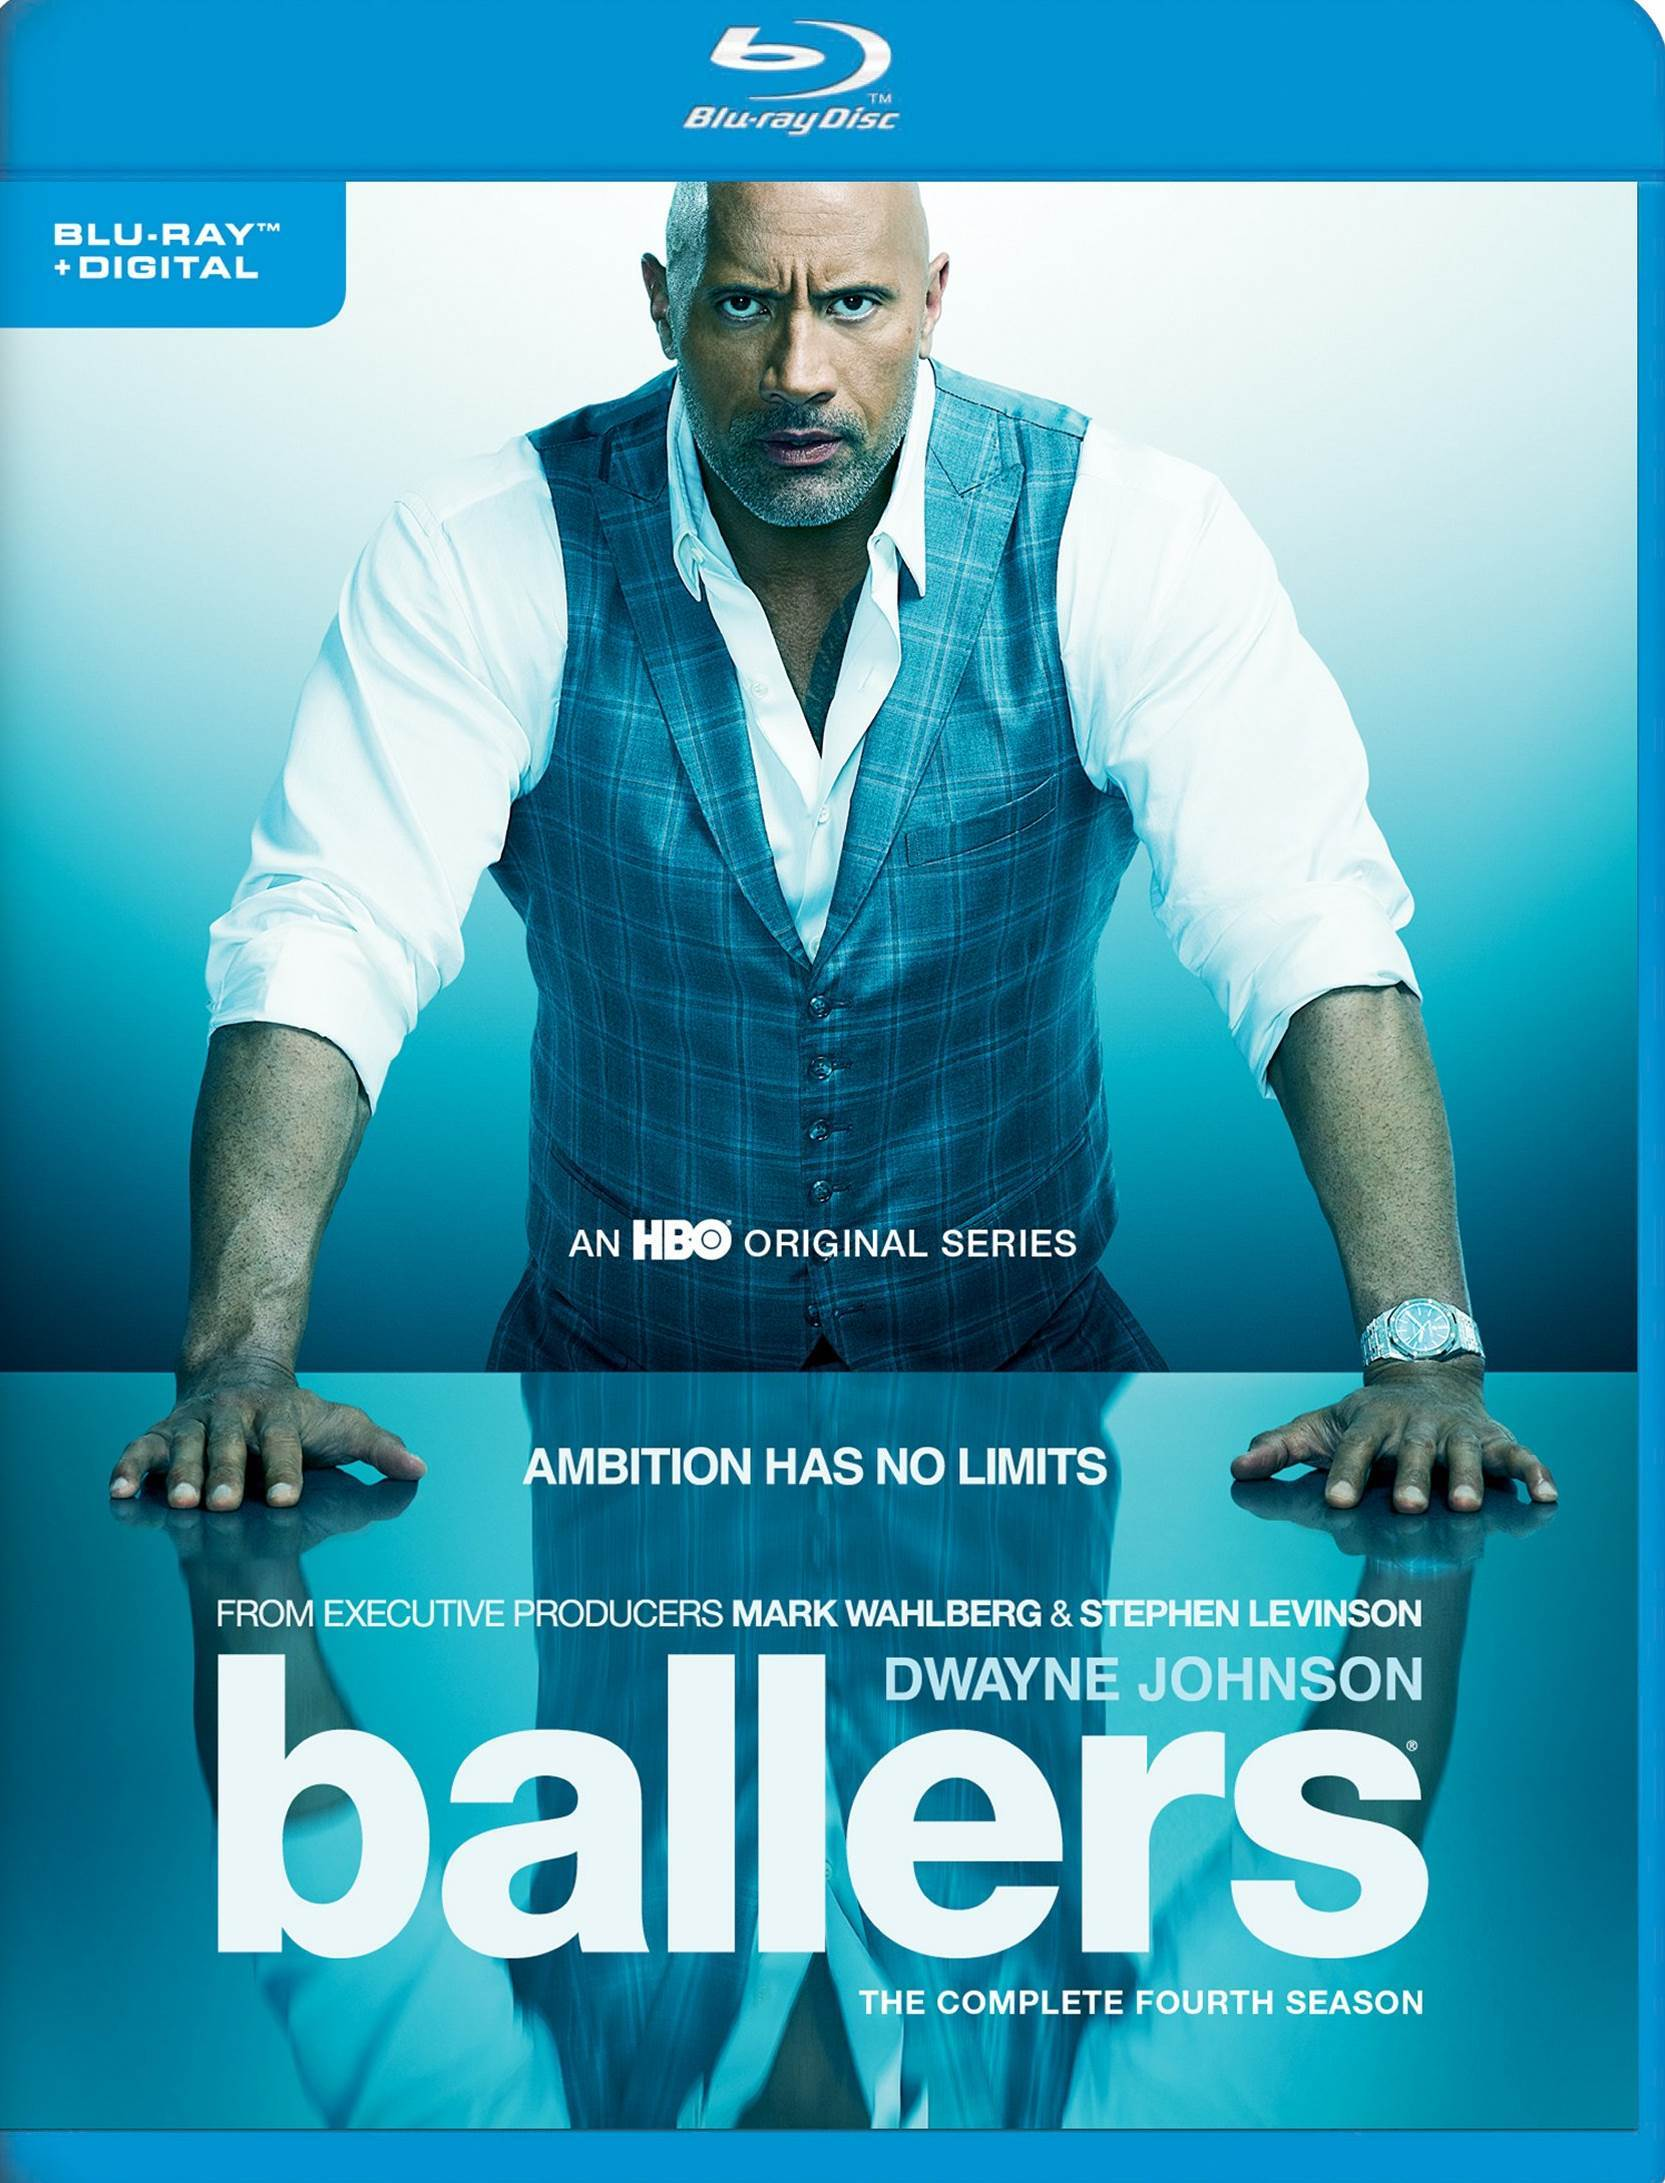 Ballers: The Complete Fourth Season (Blu-ray)(Region Free)(Pre-order / Jan 29)